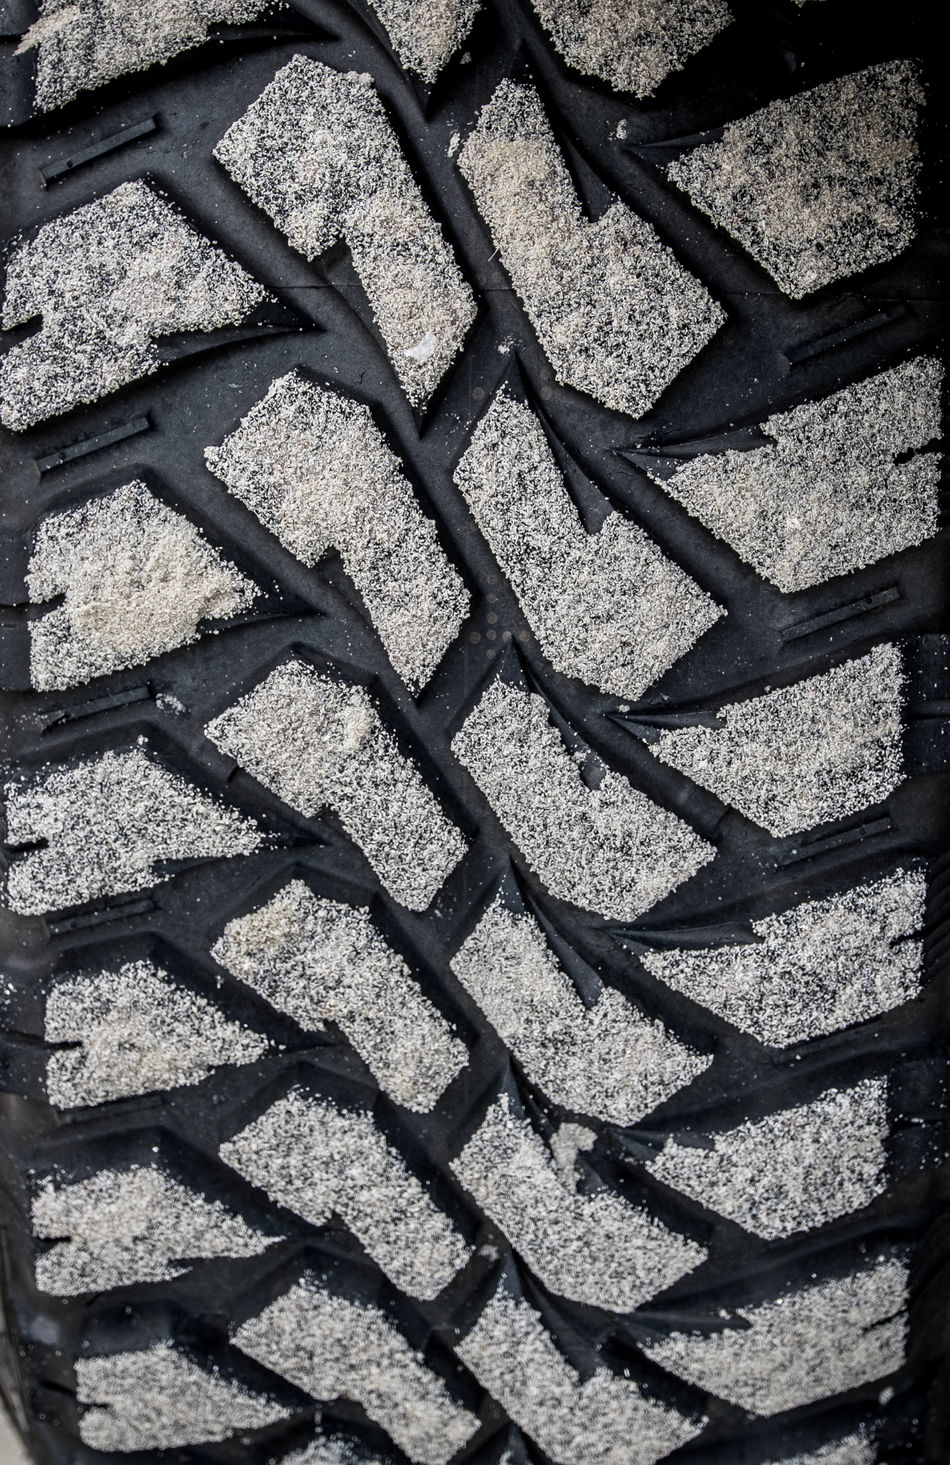 mud tyre Backgrounds Close-up Day Full Frame Mud Tires No People Offroad Adventure Outdoors Pattern Tyre